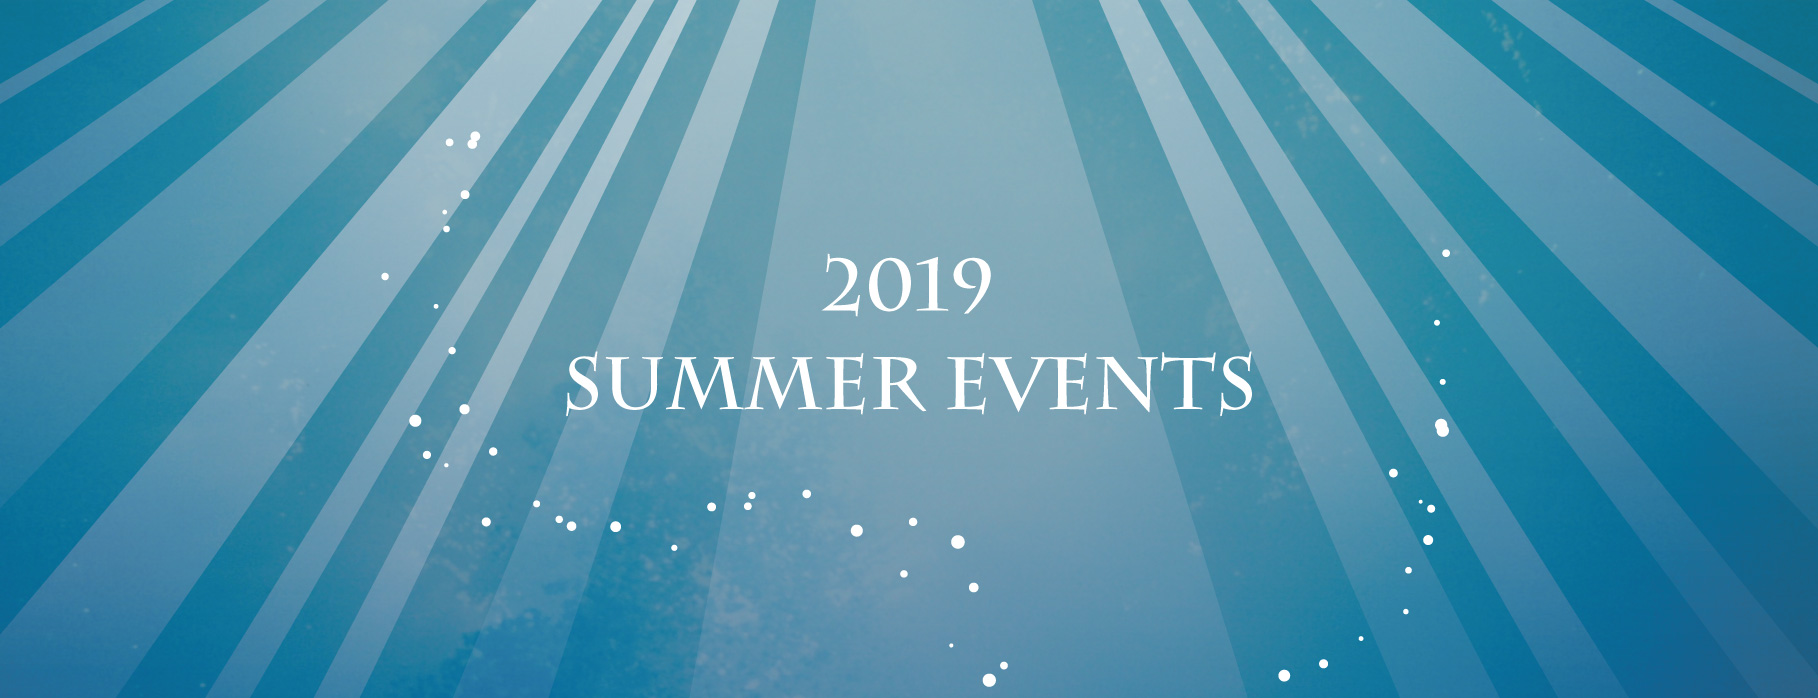 2019 SUMMER EVENTS